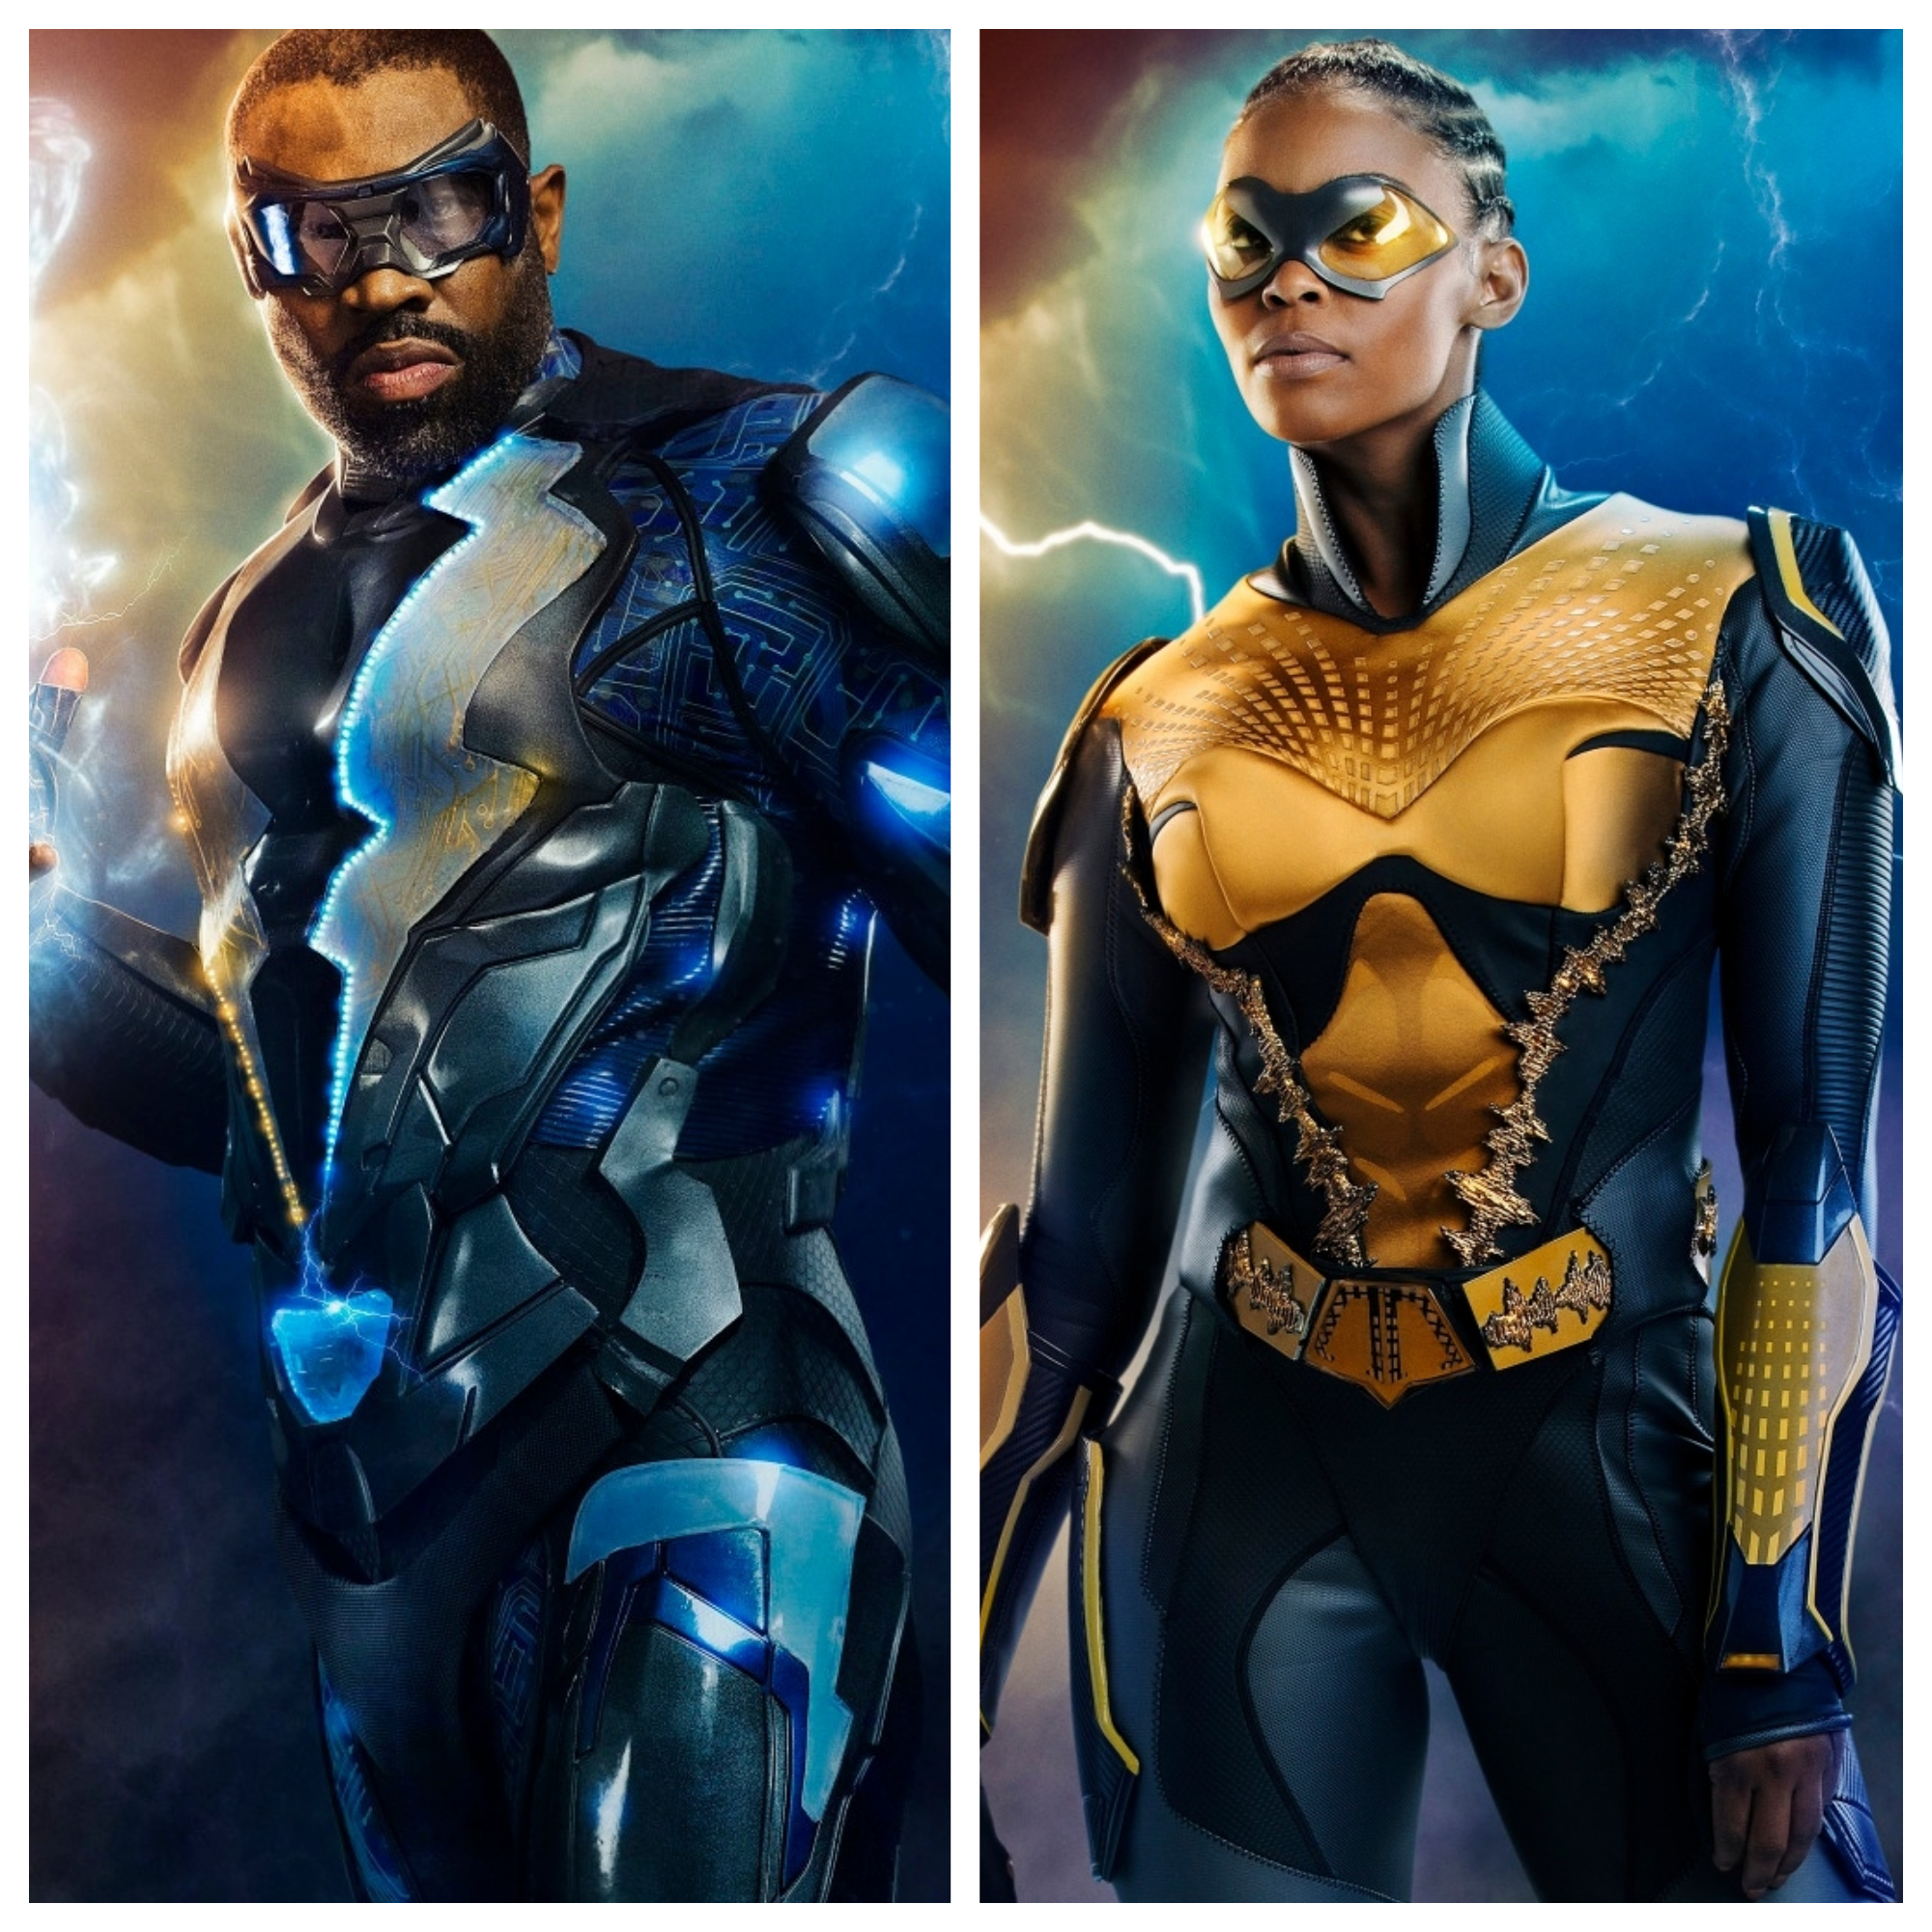 left-cress-williams-as-the-superhero-black-lightning-right-nafessa-williams-suited-up-as-thunder